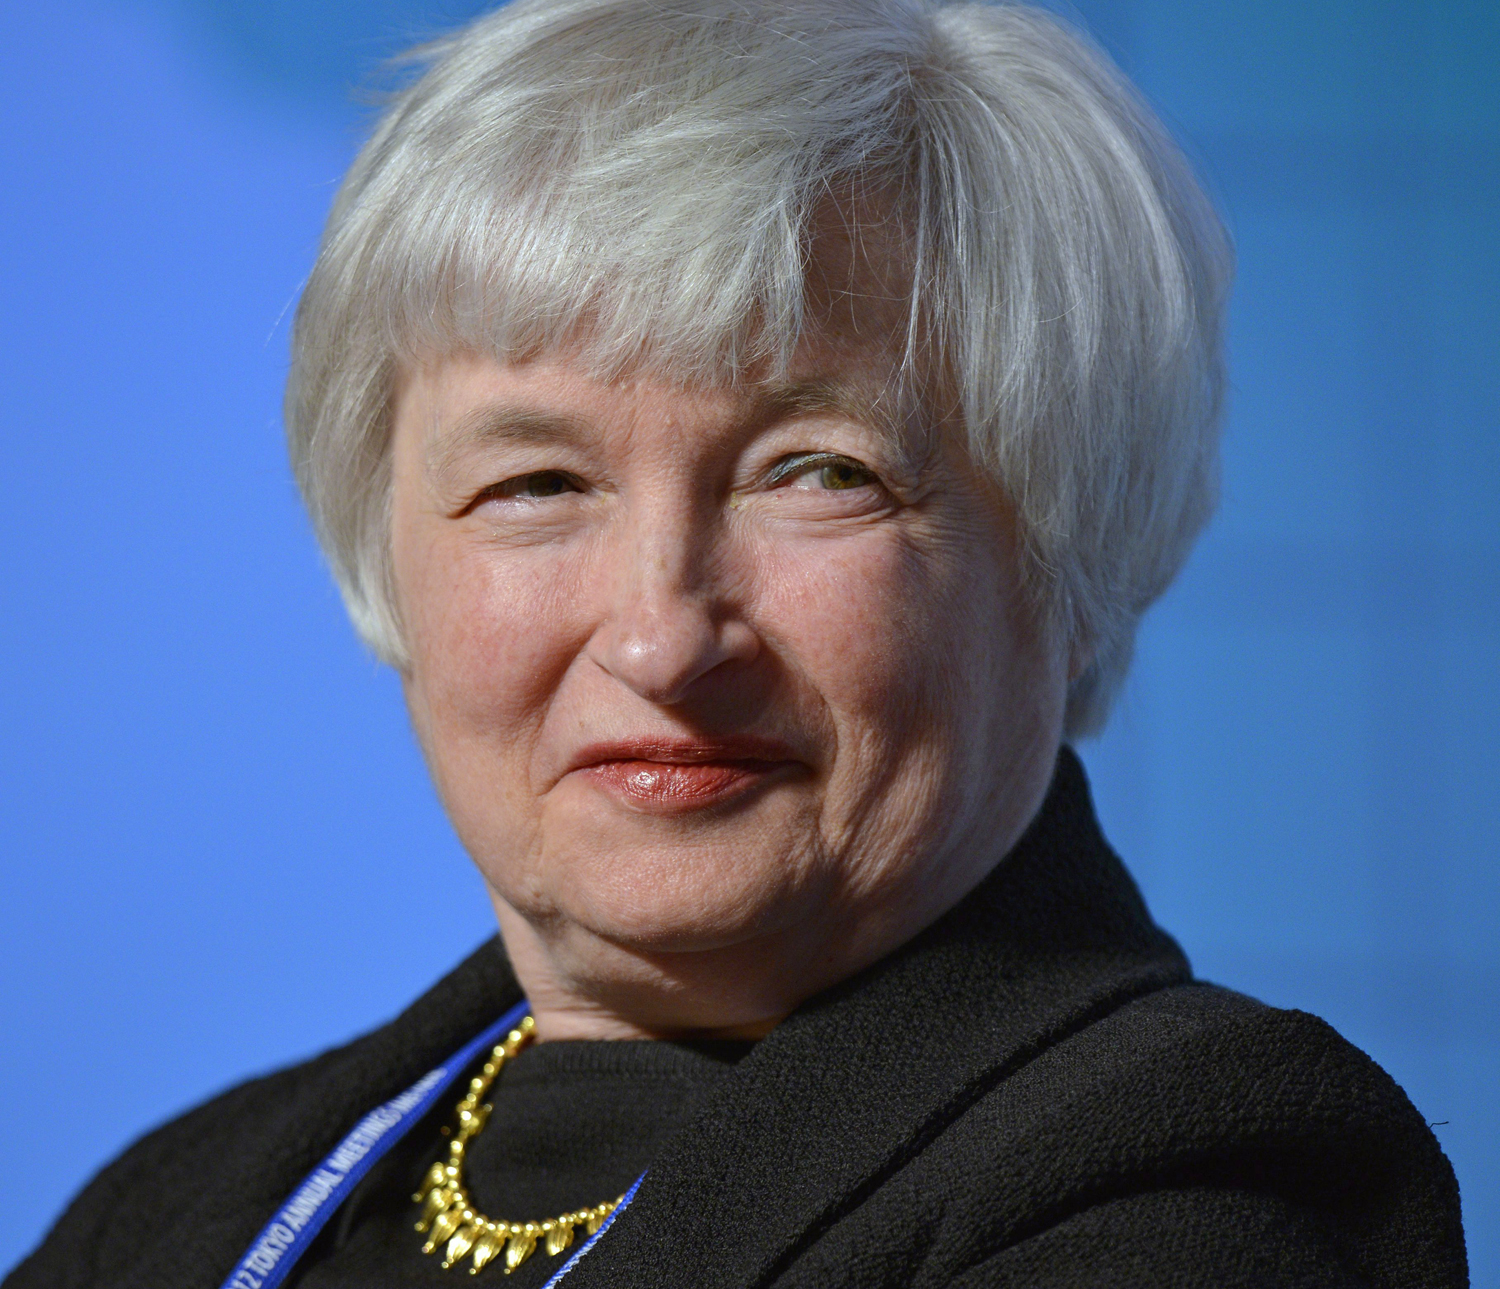 Janet Yellen's nomination to the post of Federal Reserve Board Chairman elevates her to the highest echelons of economic power, and may make her the most powerful woman on the planet.